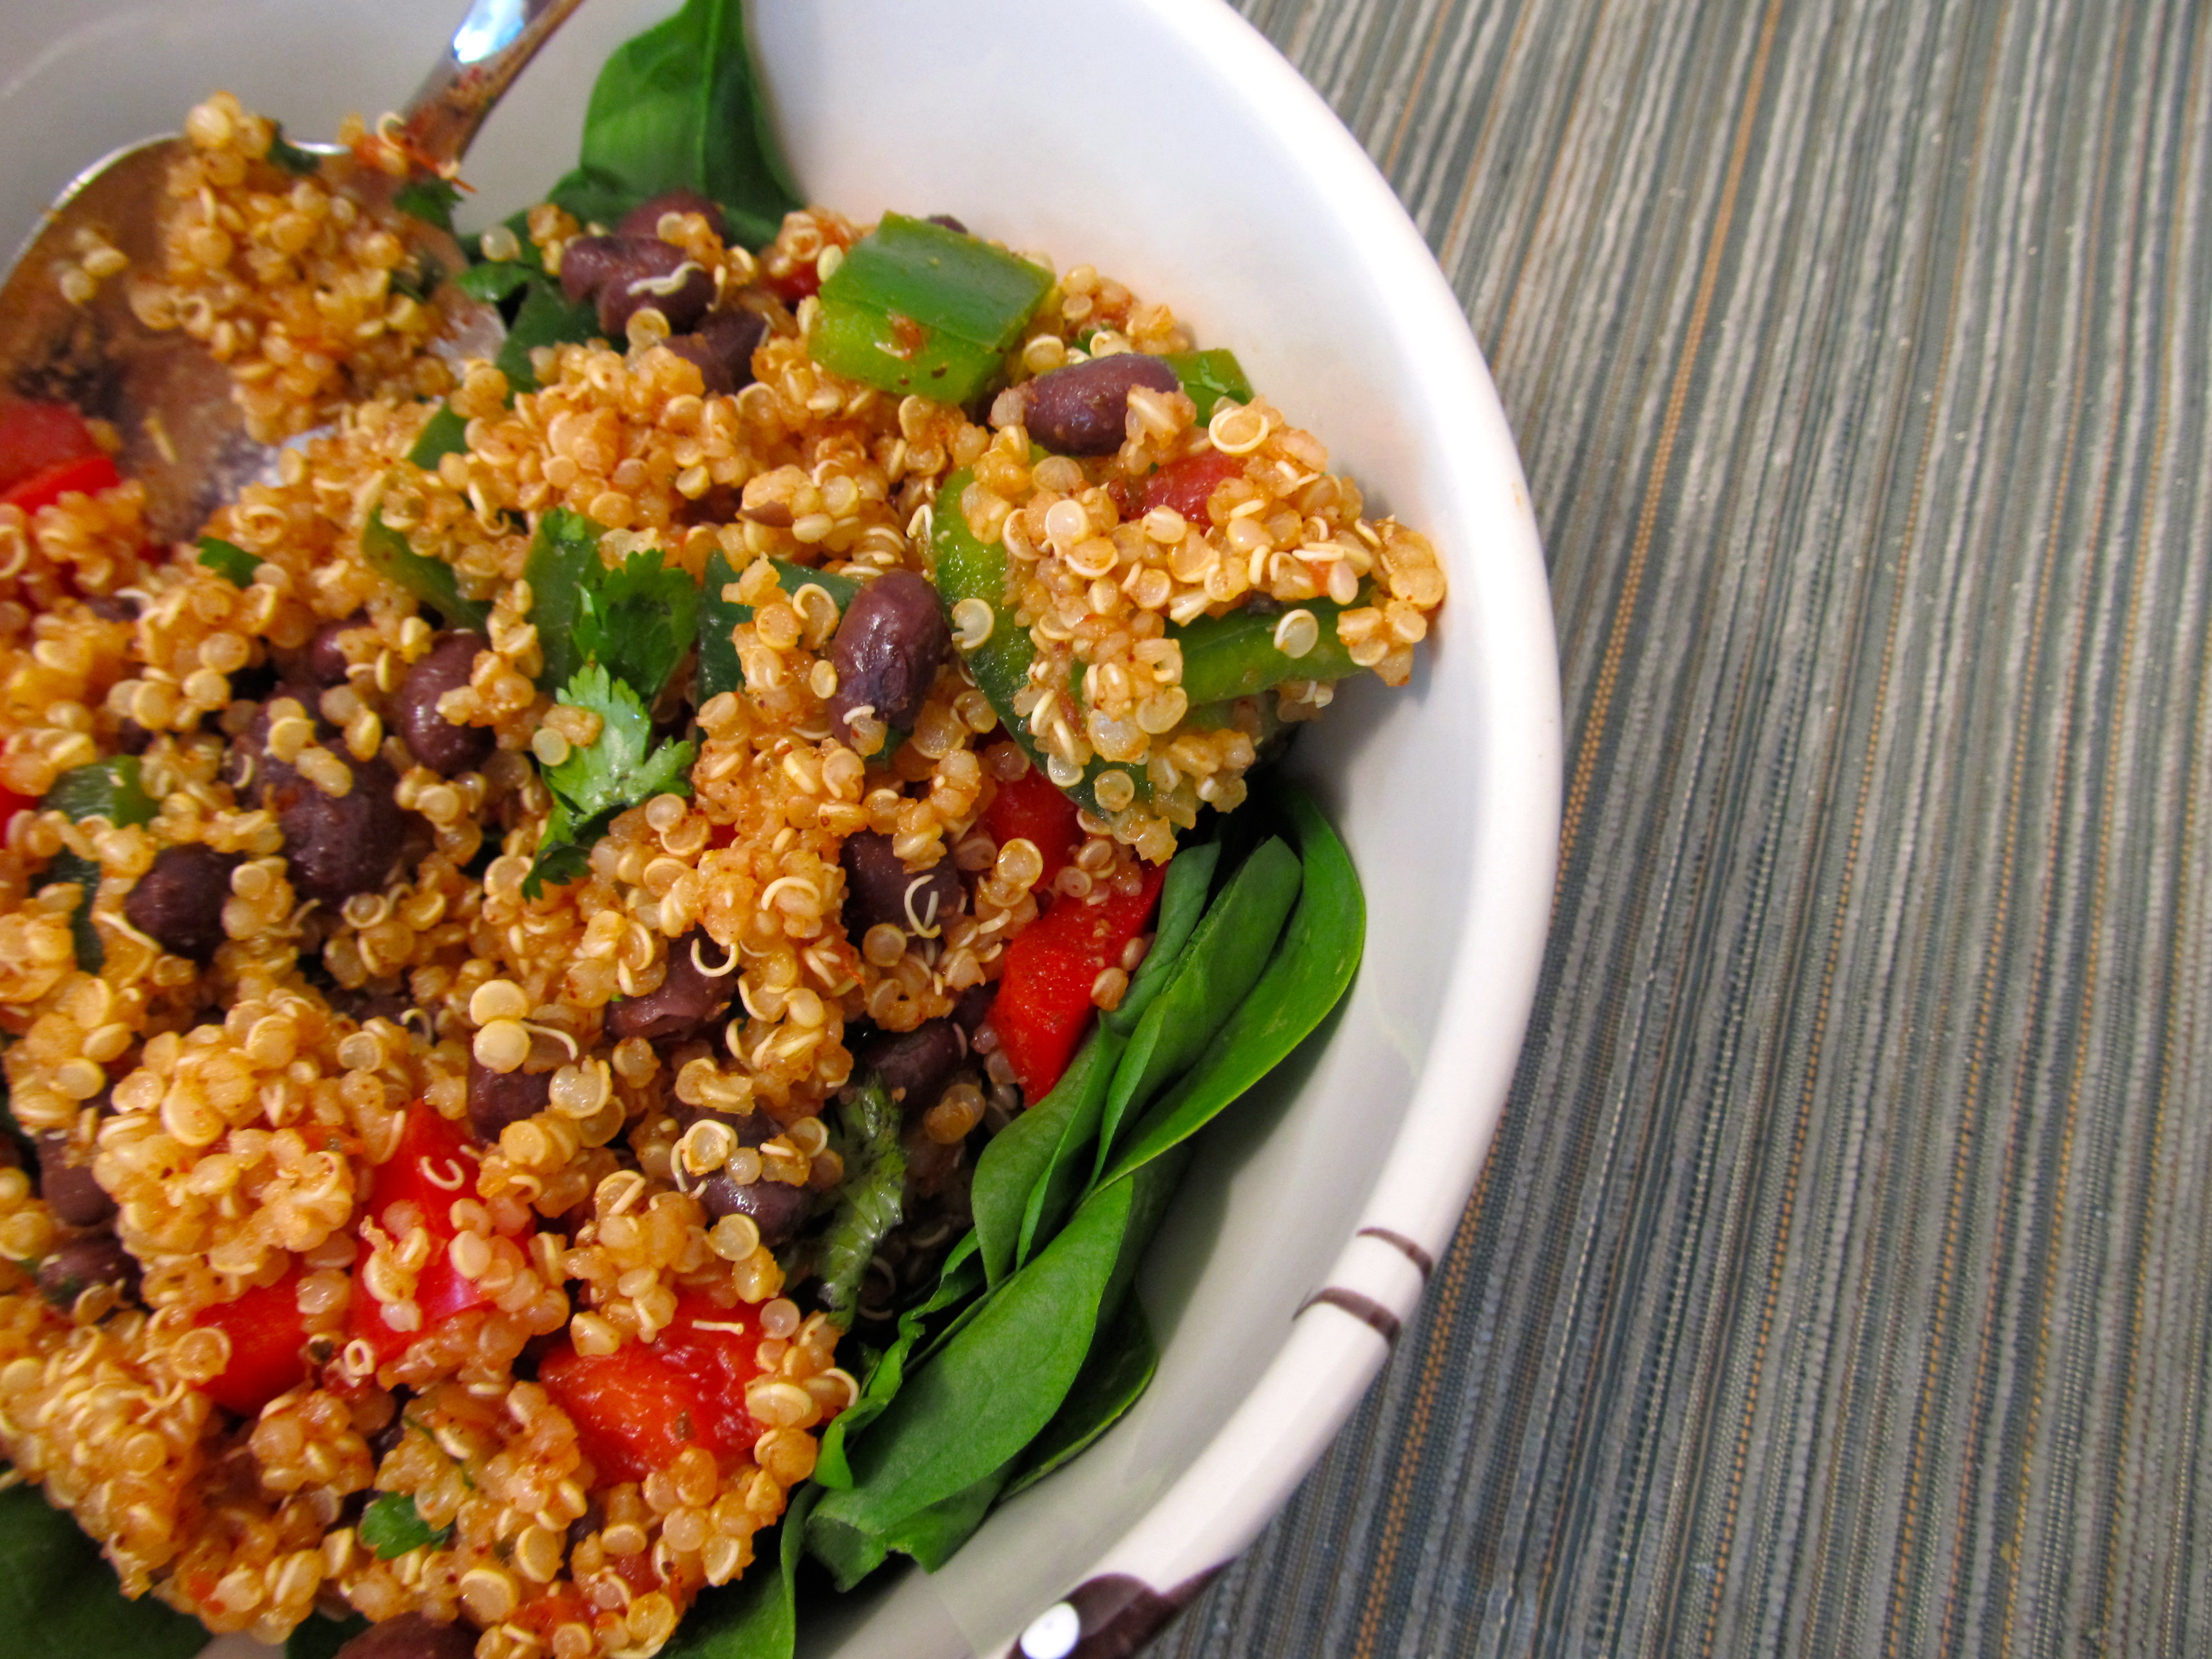 1:21-lunch-vegan-spicy-black-bean-quinoa